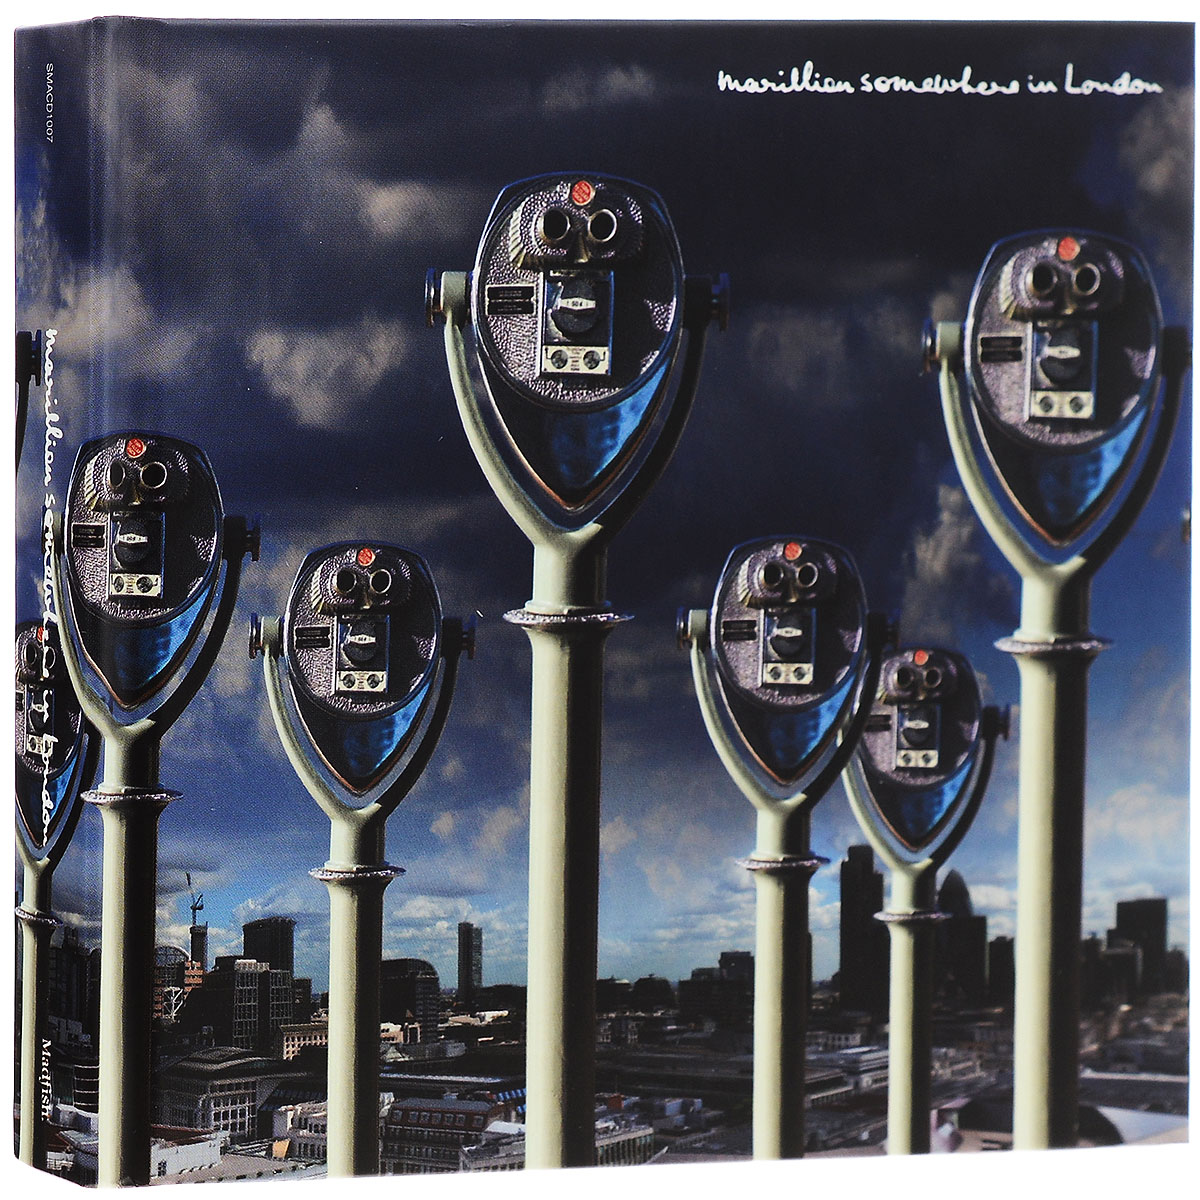 Marillion Marillion. Somewhere In London (2 CD + DVD) 747608 001 for cpu dimension cooler cooling proliant dl380 dl380p heatsink used condition